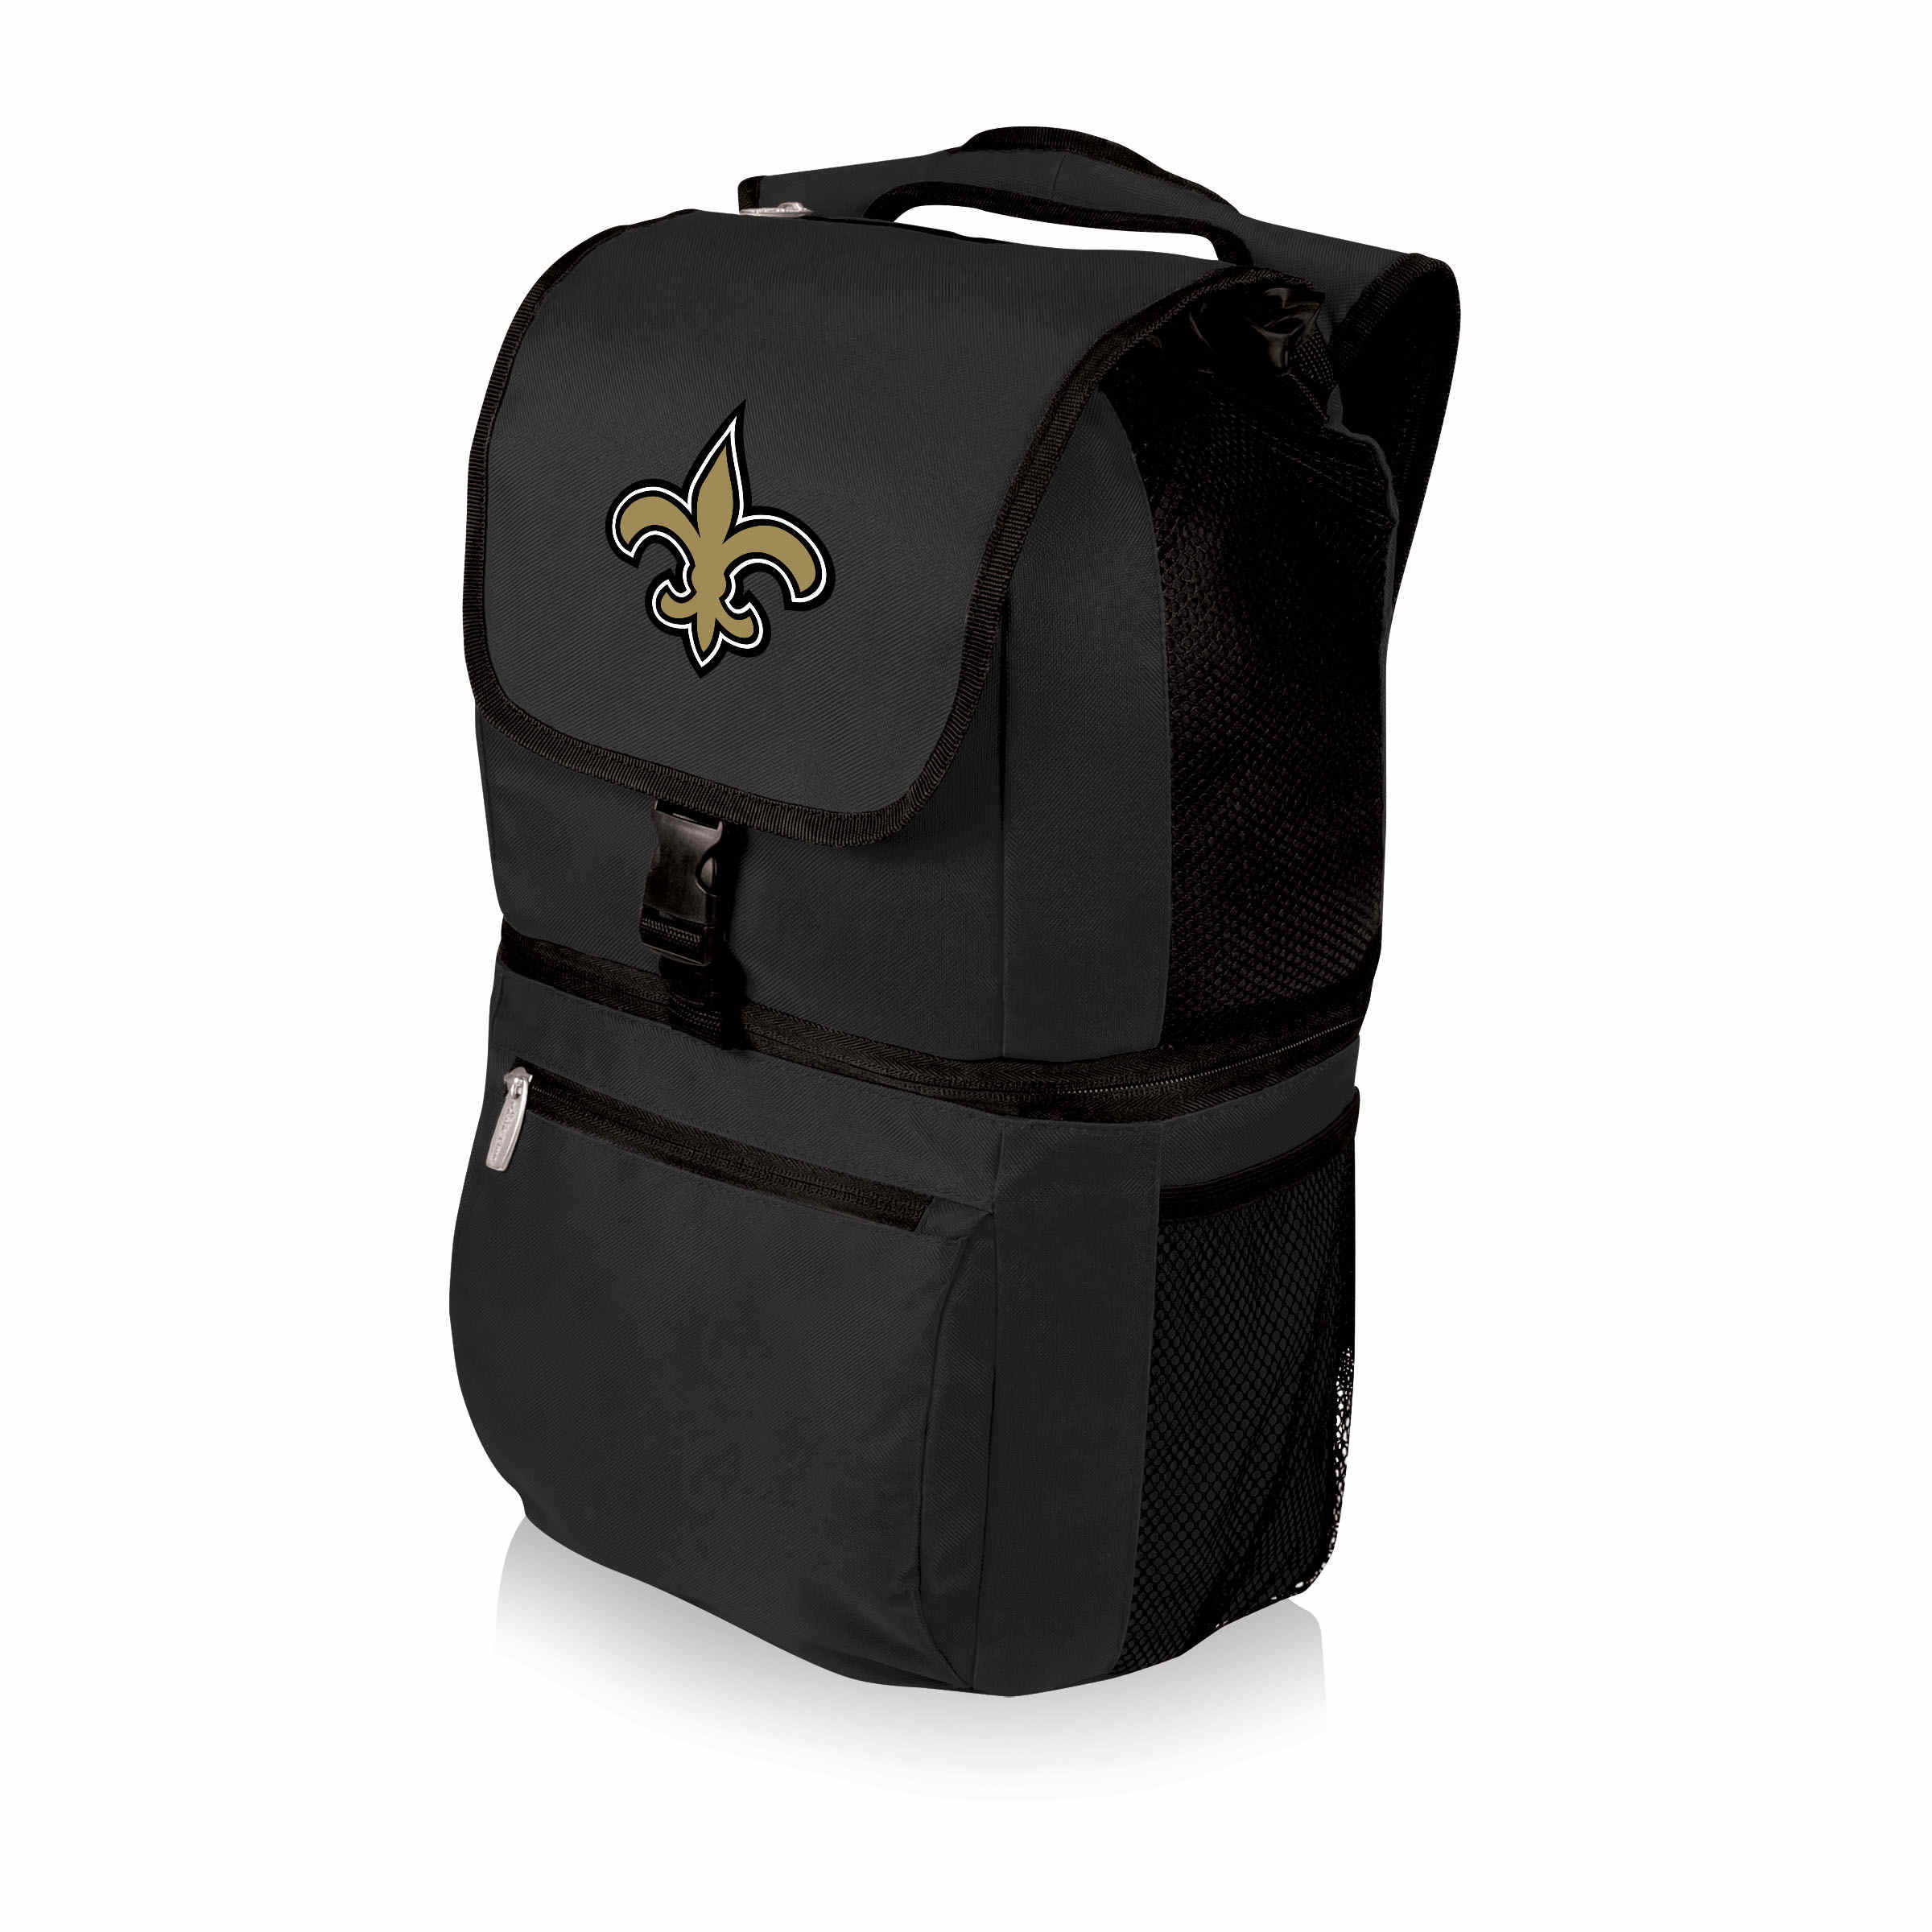 Picnic Time Nfl Zuma New Orleans Saints